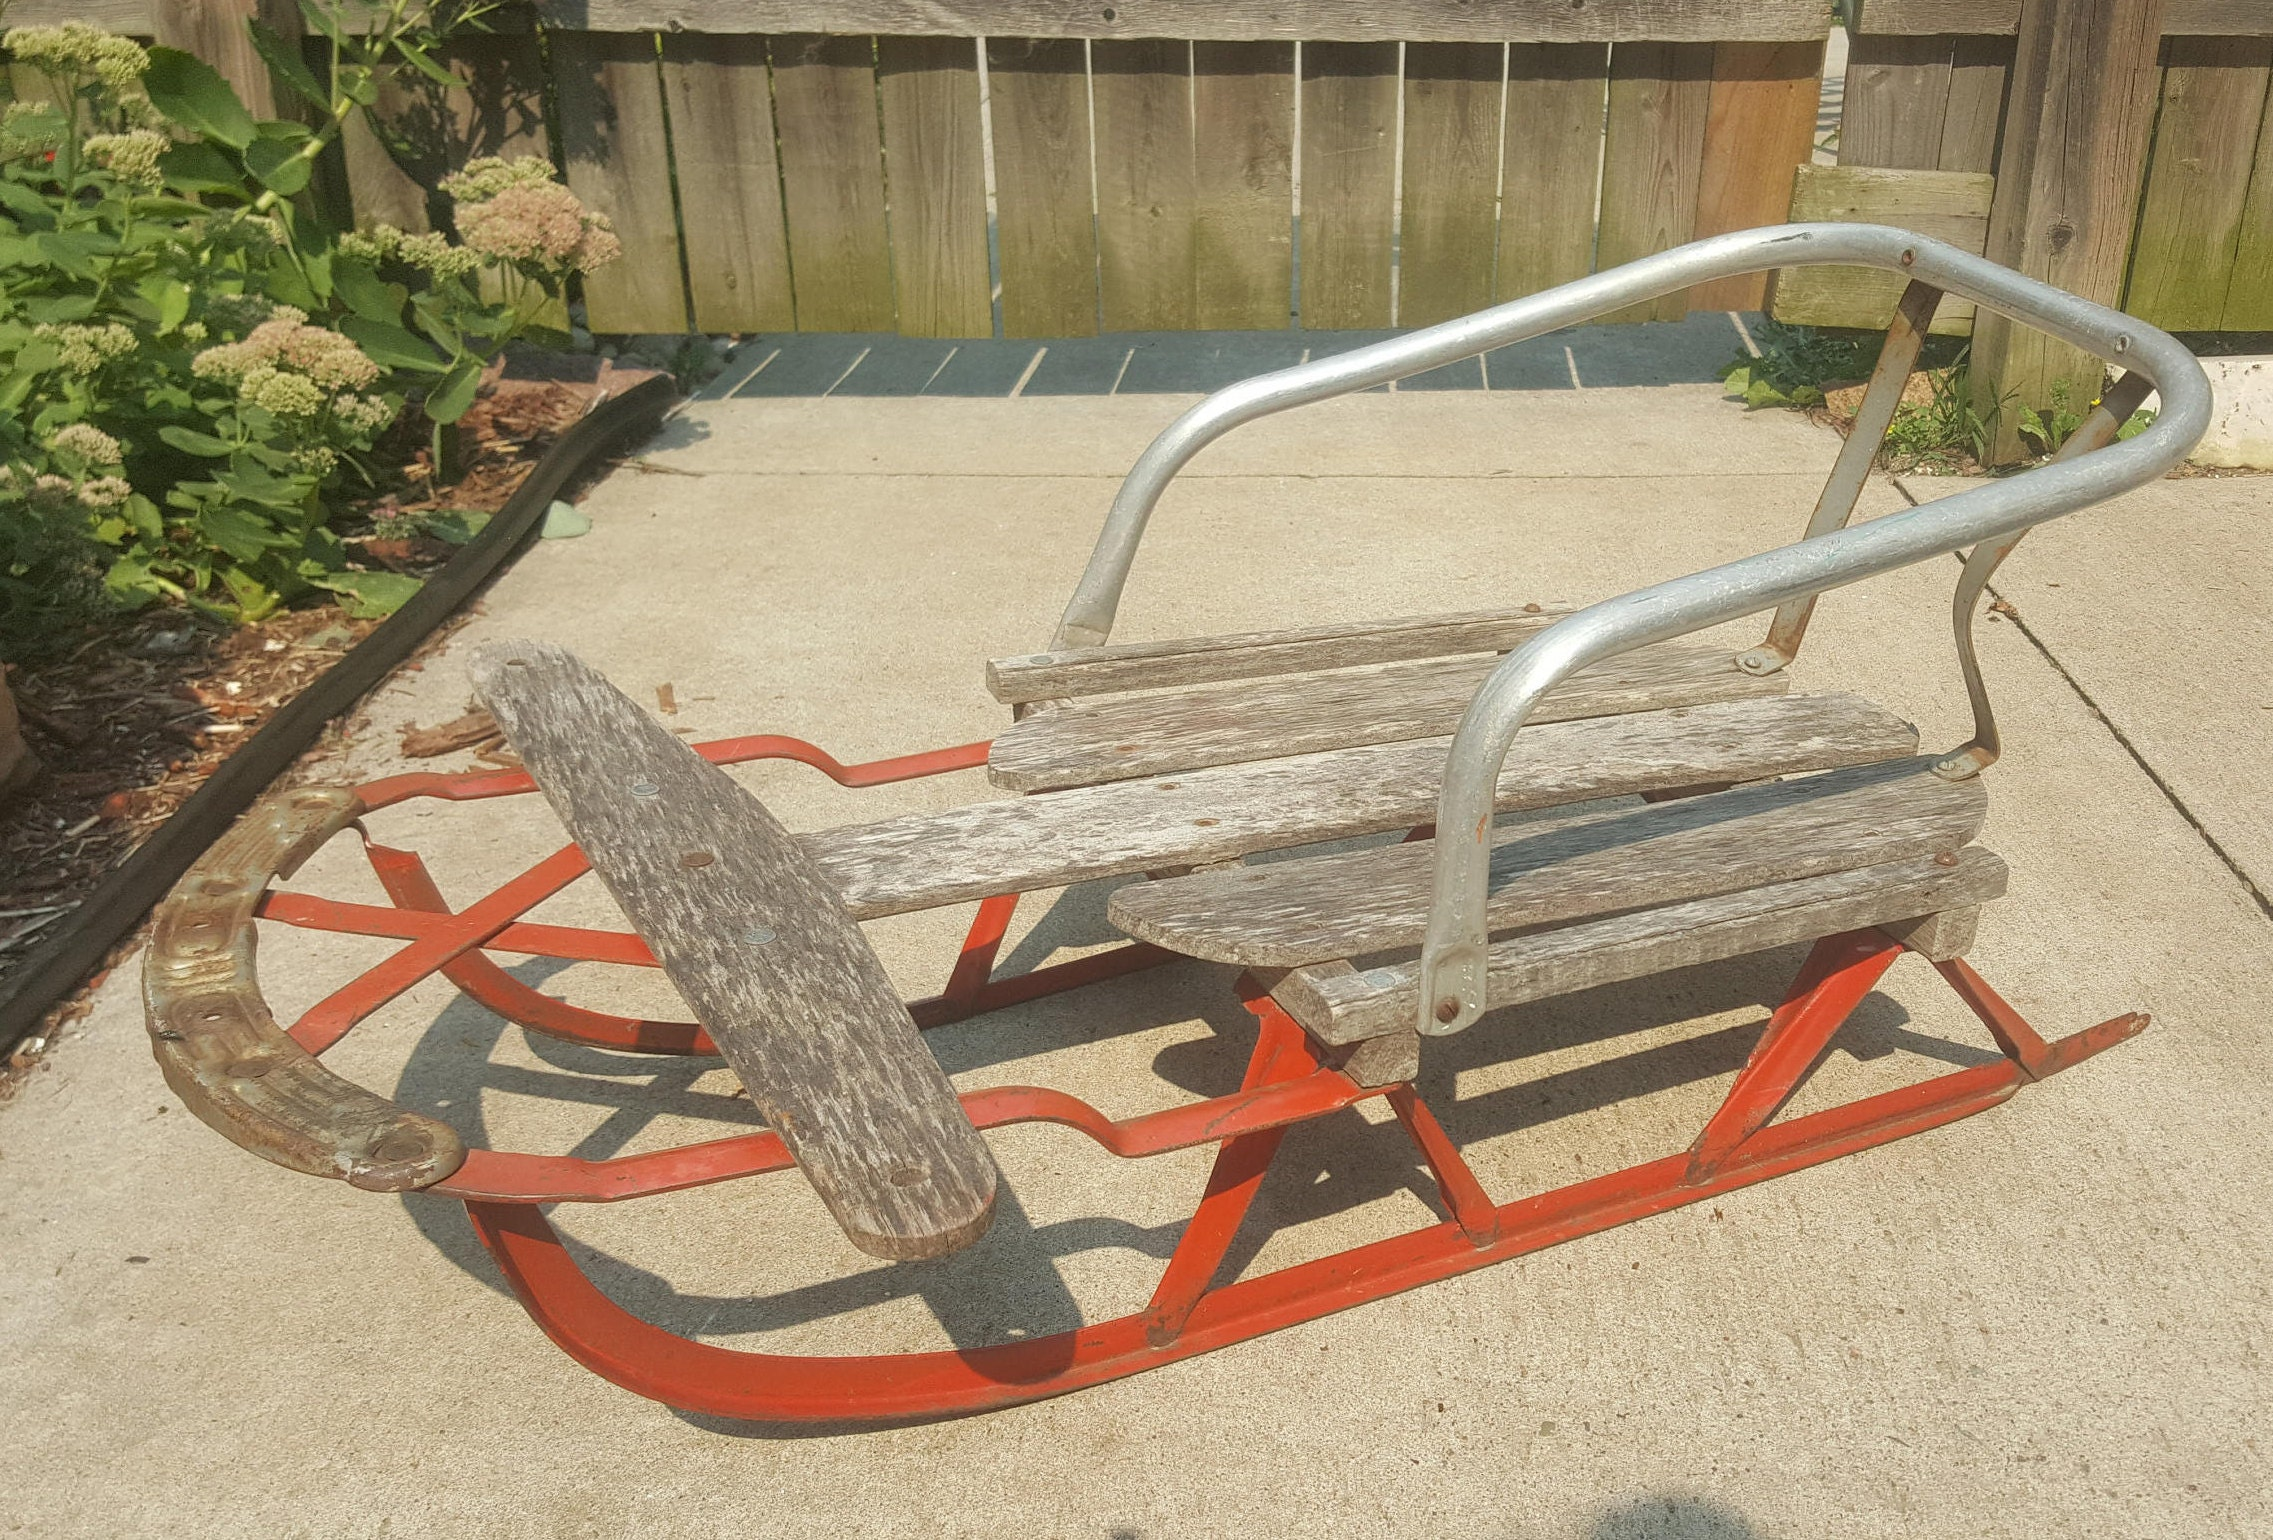 Old Runner Sled Antique Childs Snow Sled Antique Wooden Sleds Primitive Sleds Holiday Home Decor Collector Small Wooden Sled Rare